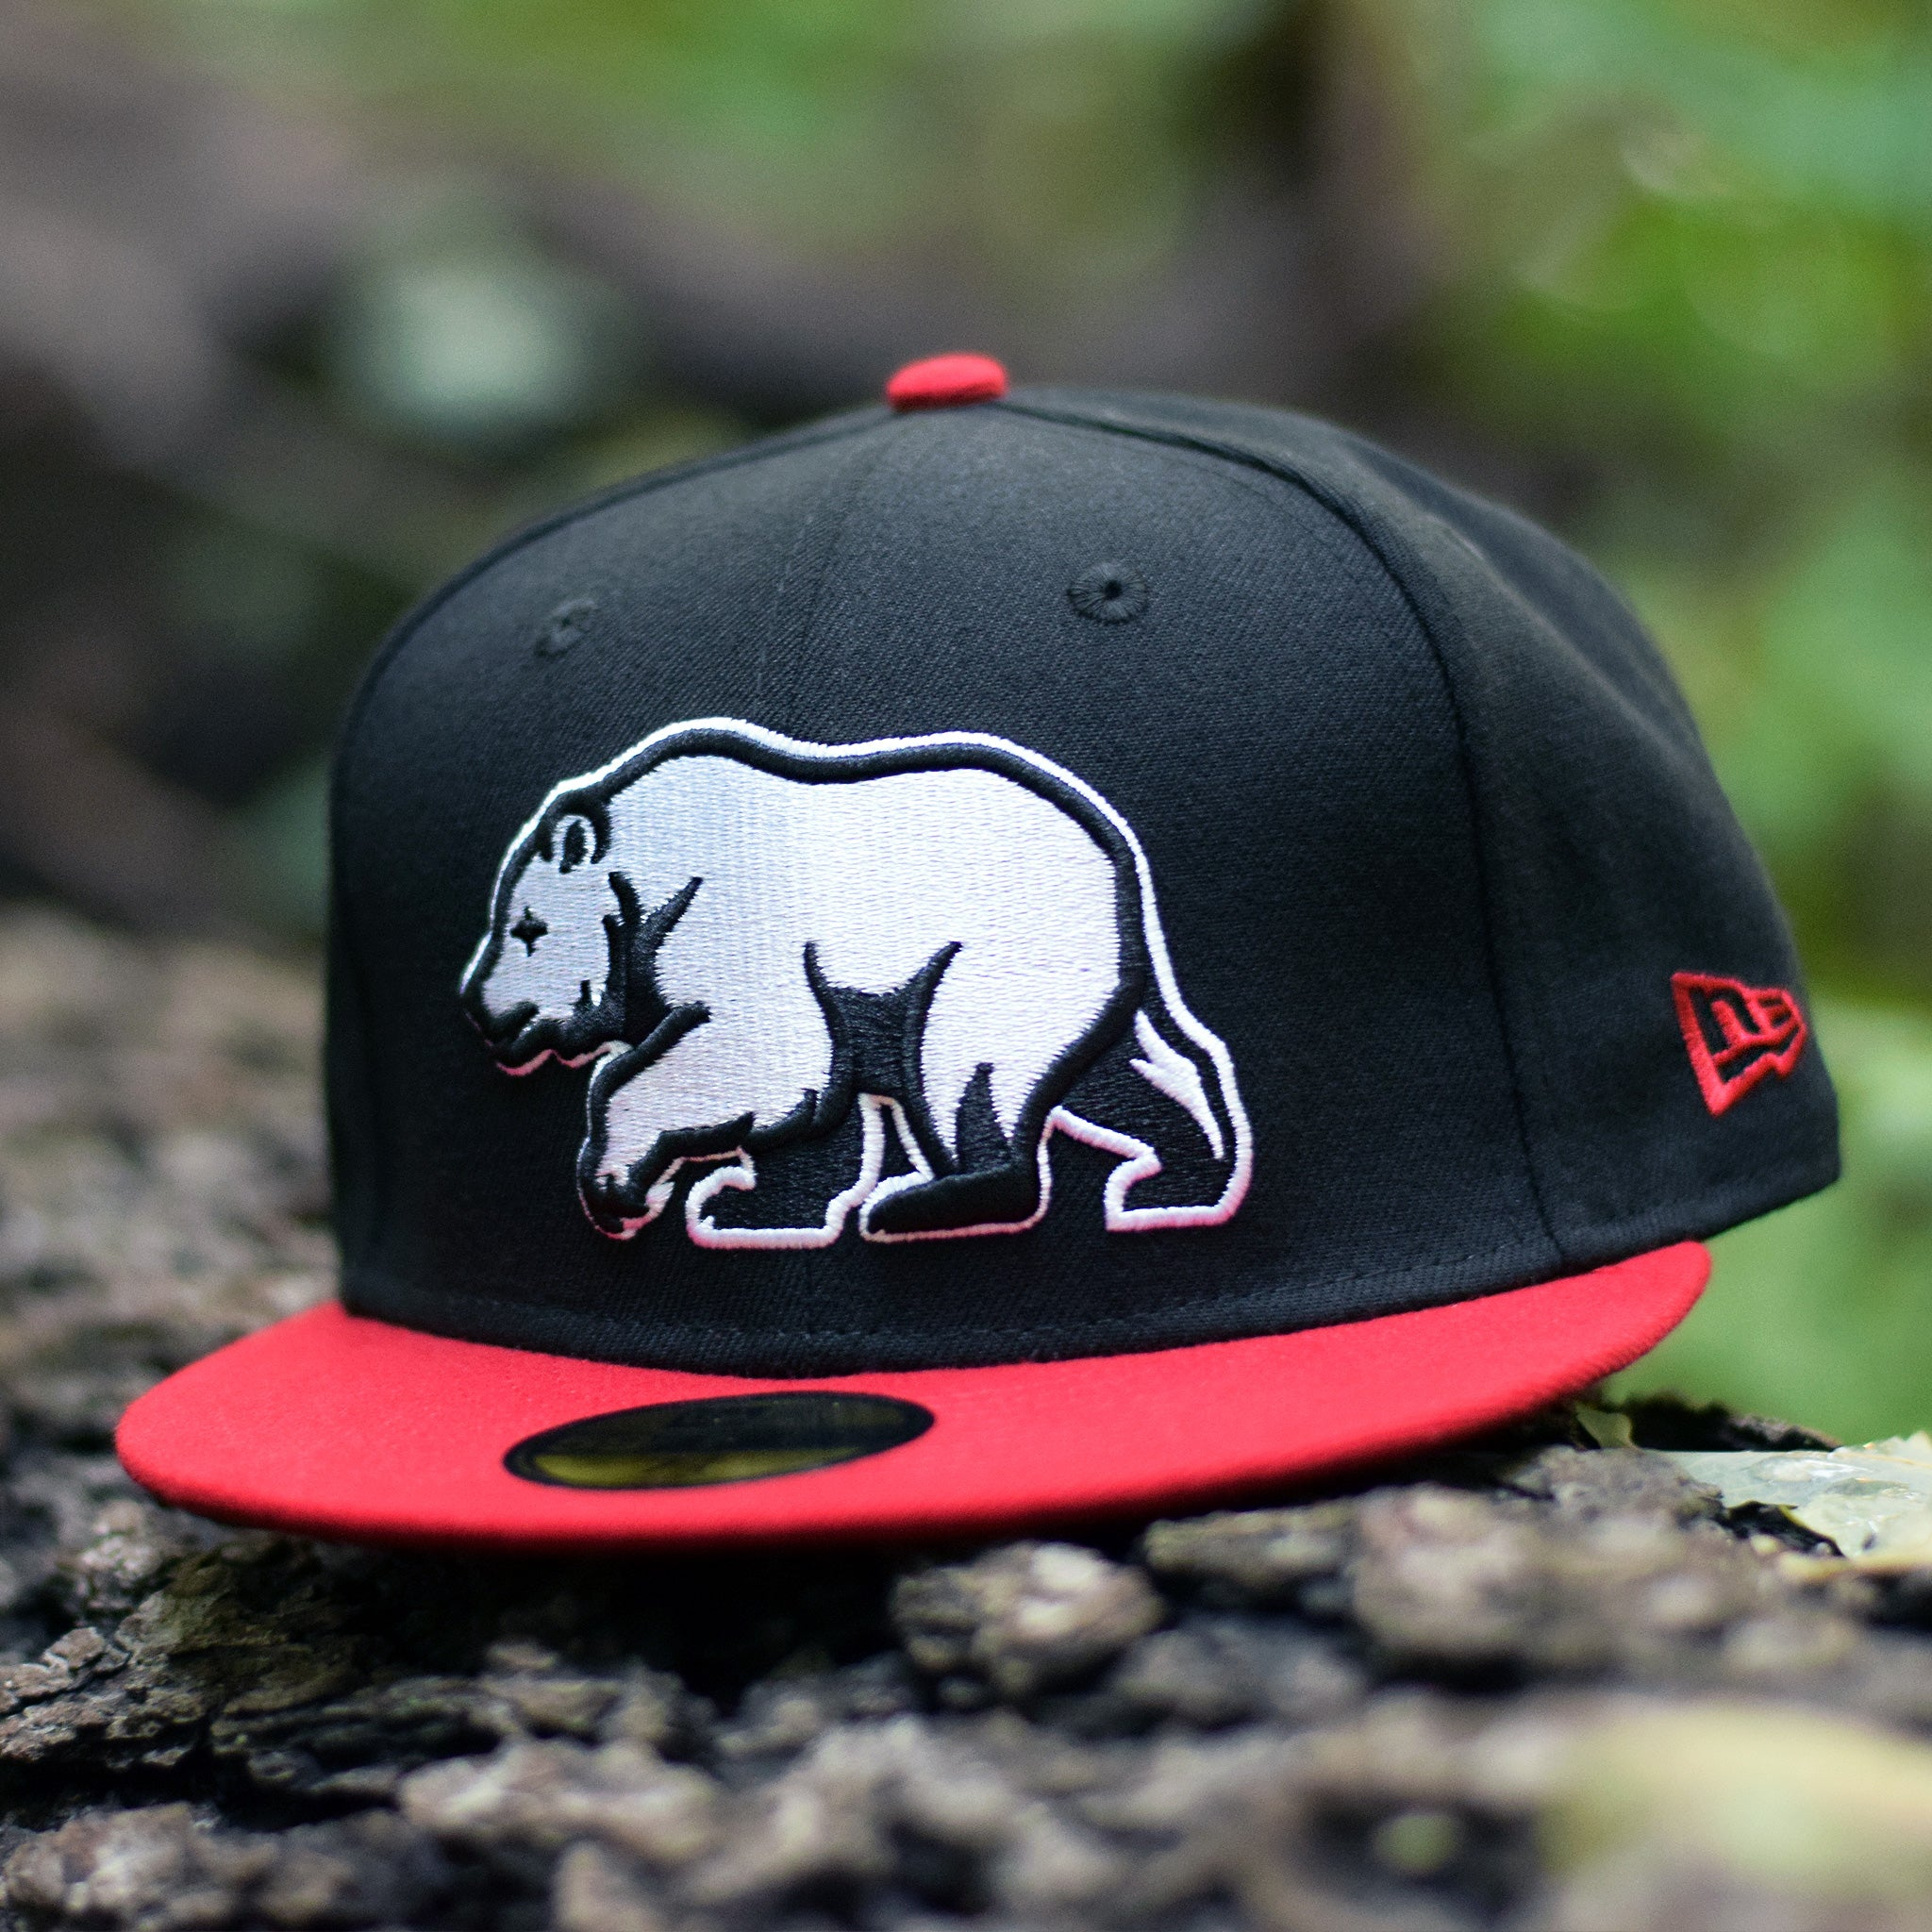 ... czech nobe north bear explorer black red new era 59fifty hat front  af8ea 802d3 7a6f08636f0c